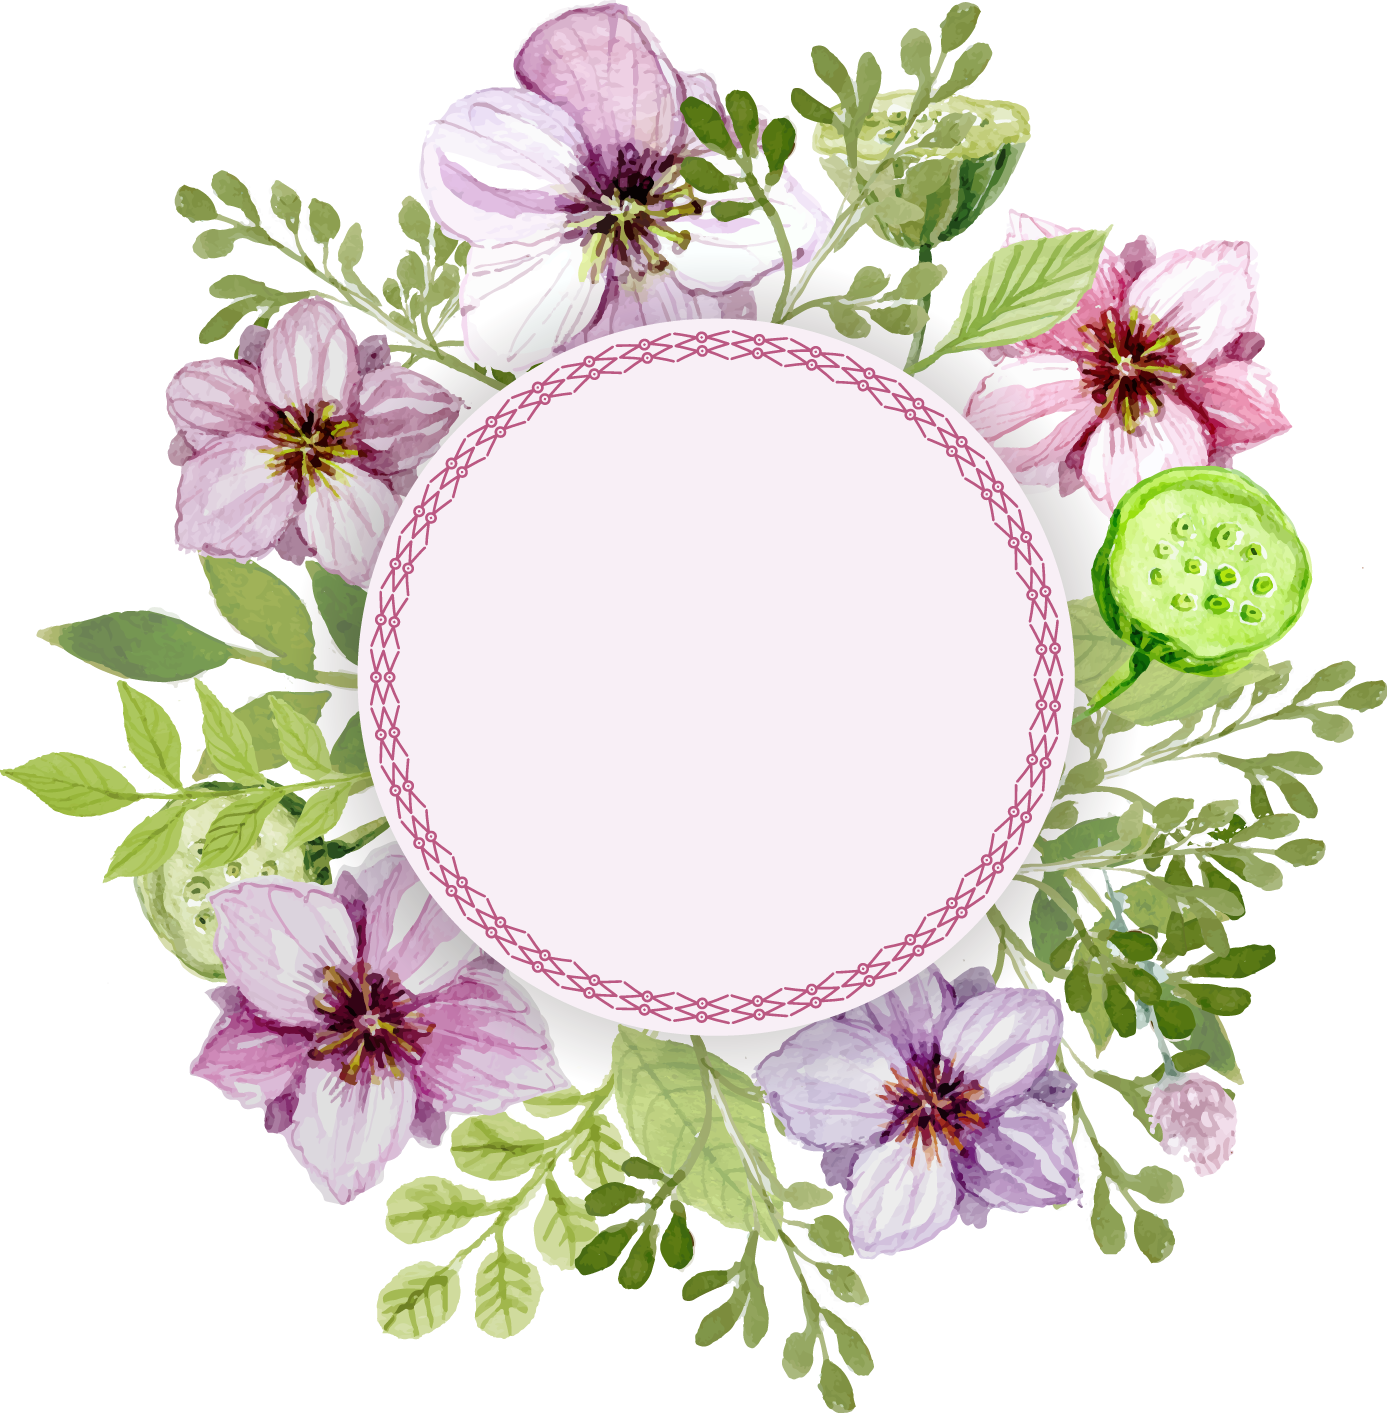 Flower painting label delicate. Plate clipart watercolor